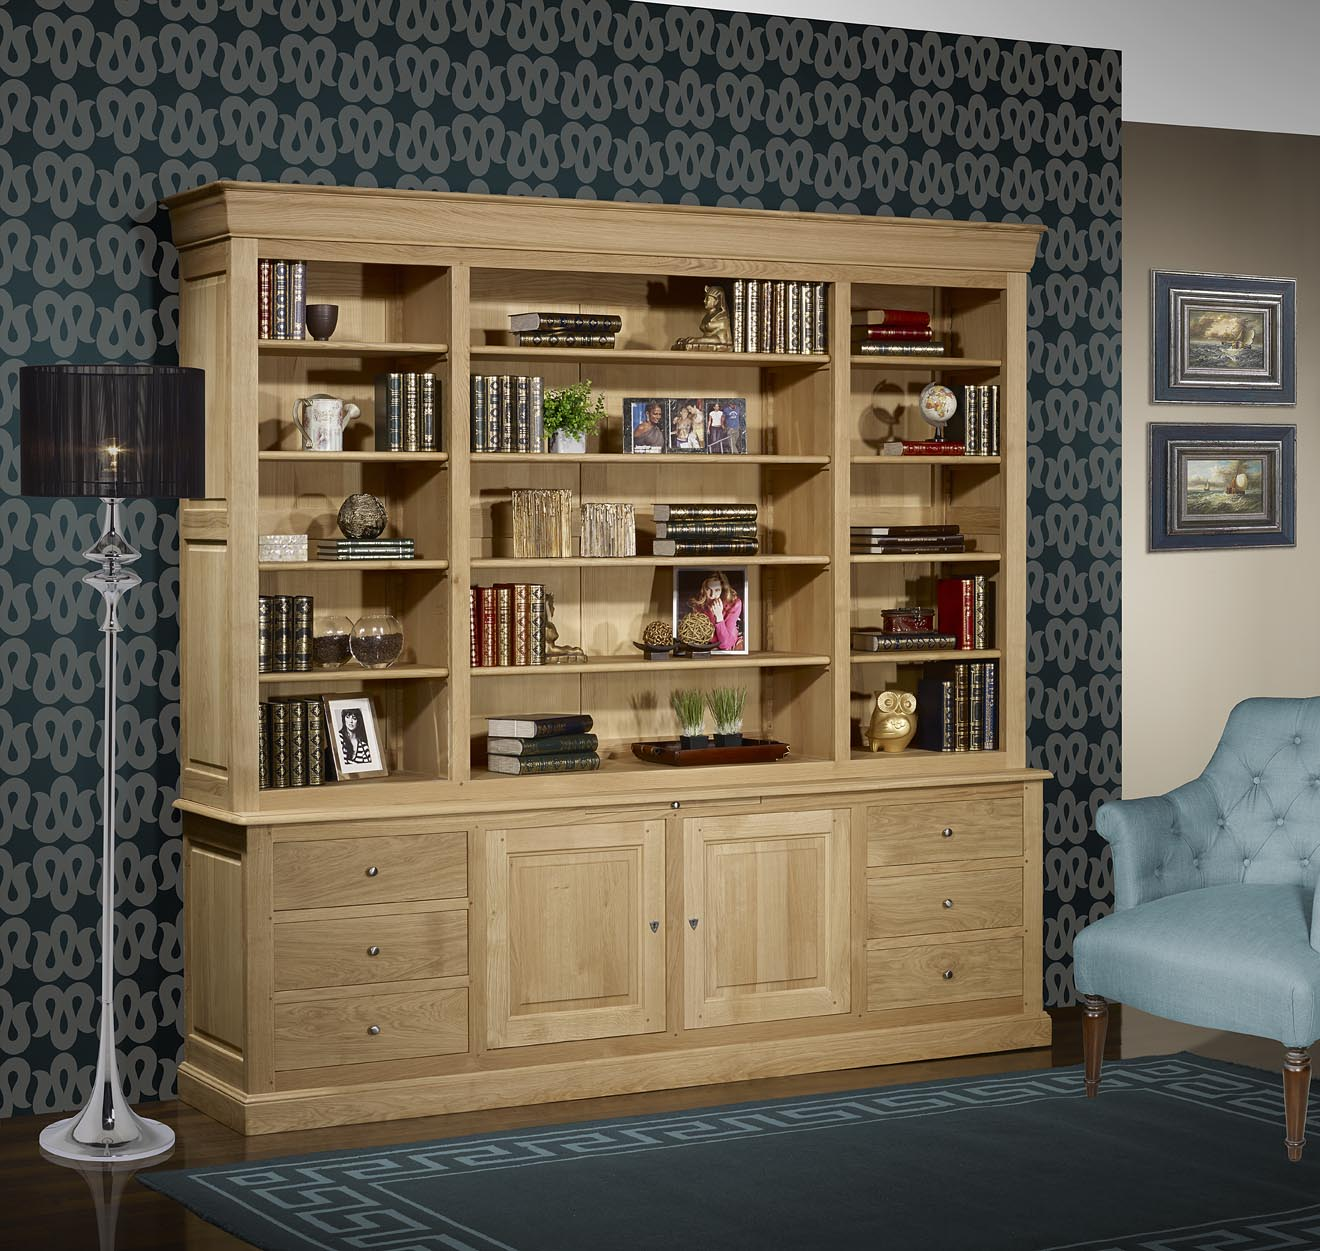 biblioth que 2 corps pierre en ch ne massif de style louis philippe longueur 240 cm finition. Black Bedroom Furniture Sets. Home Design Ideas